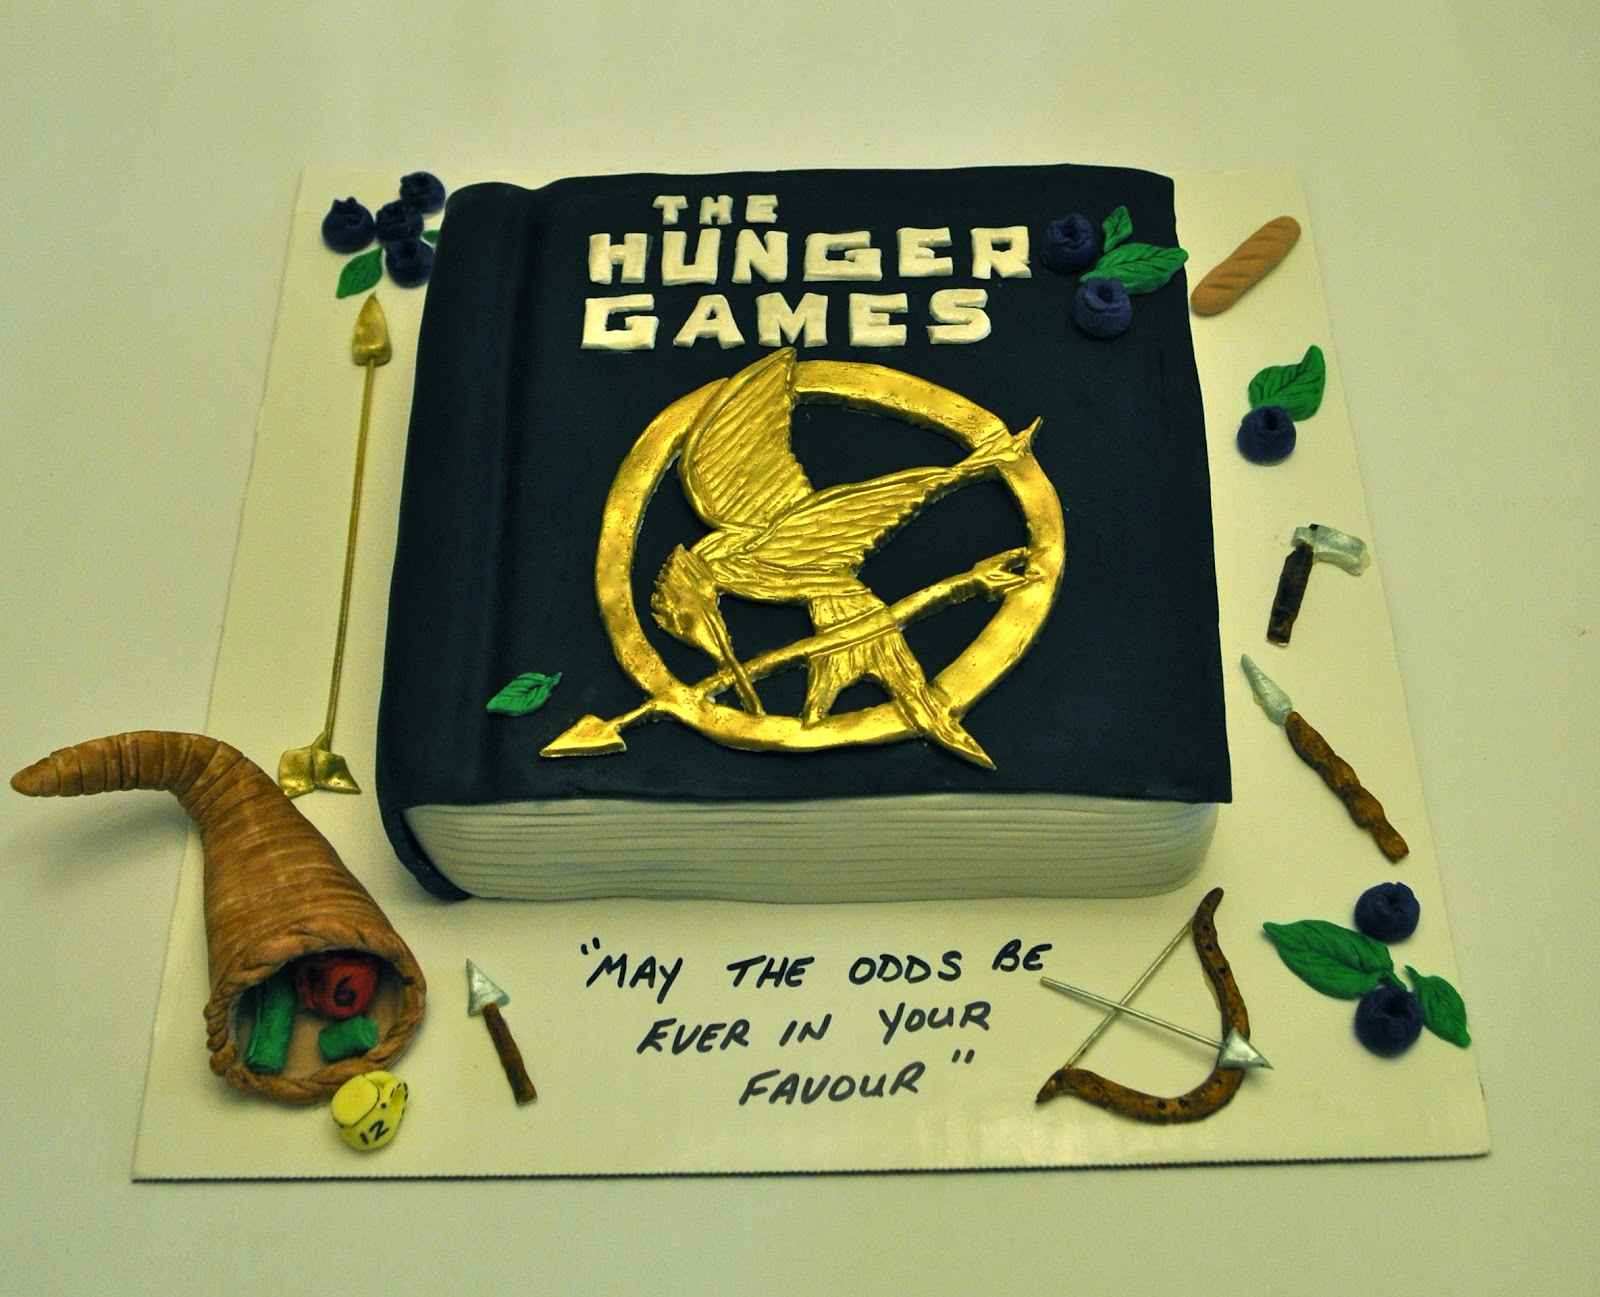 Eleven Hunger Games Cake Ideas For An Eleventh Birthday